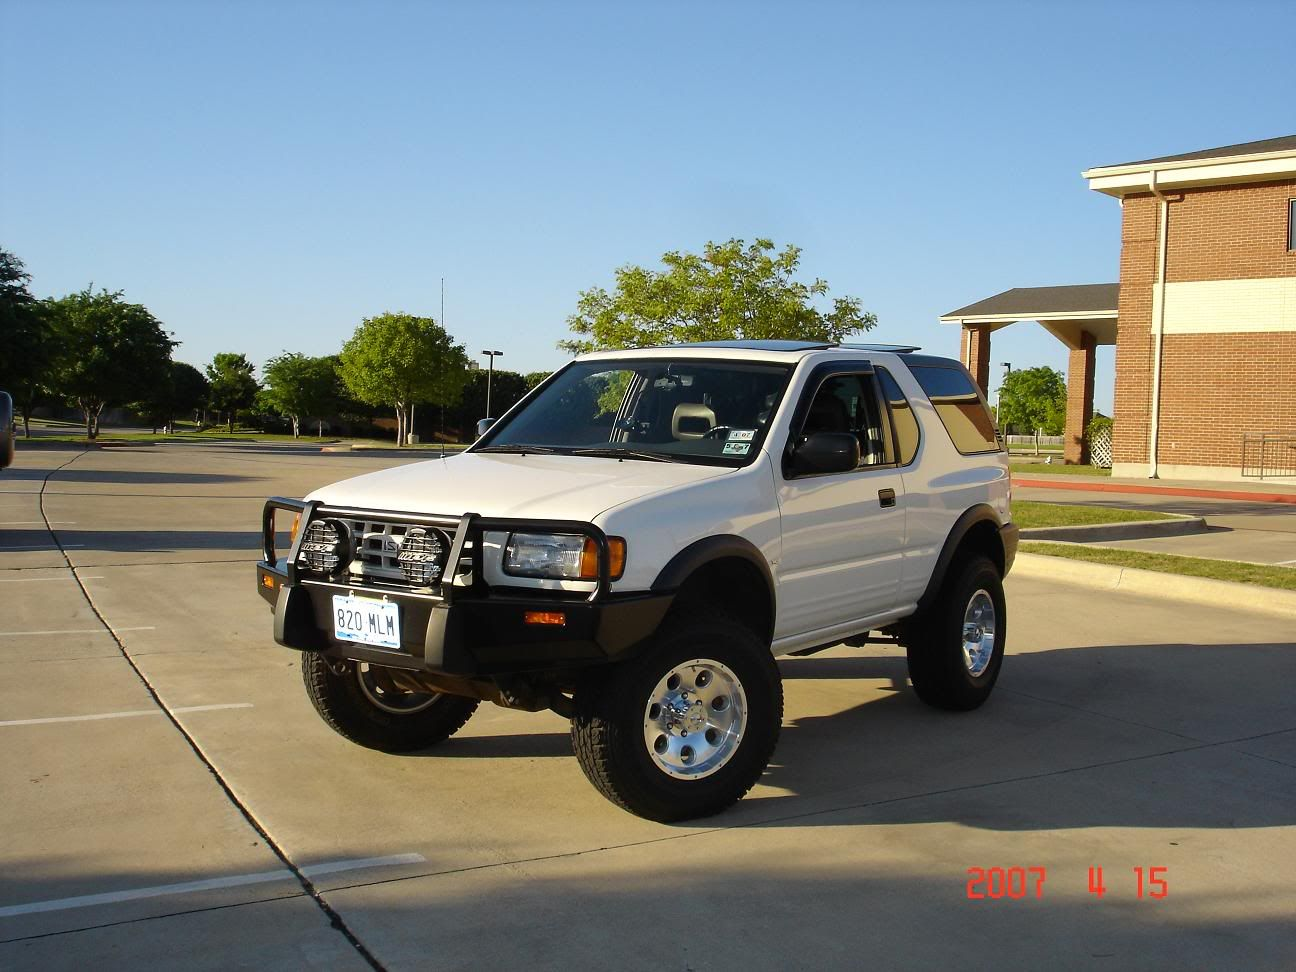 hight resolution of isuzu rodeo sport car picture in white